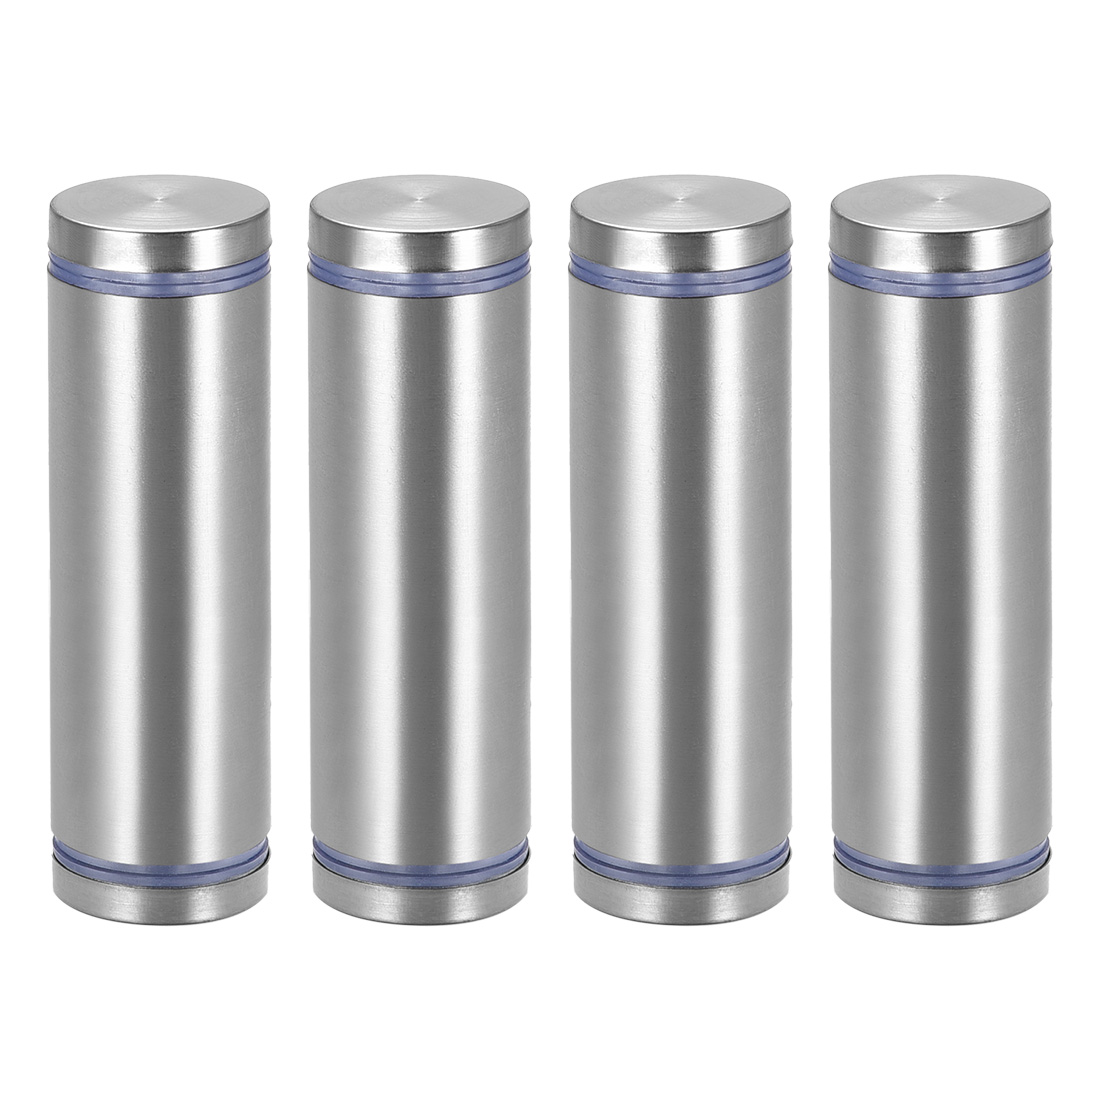 Glass Standoff Double Head Stainless Steel Standoff Holder 25mm x 85mm 4 Pcs